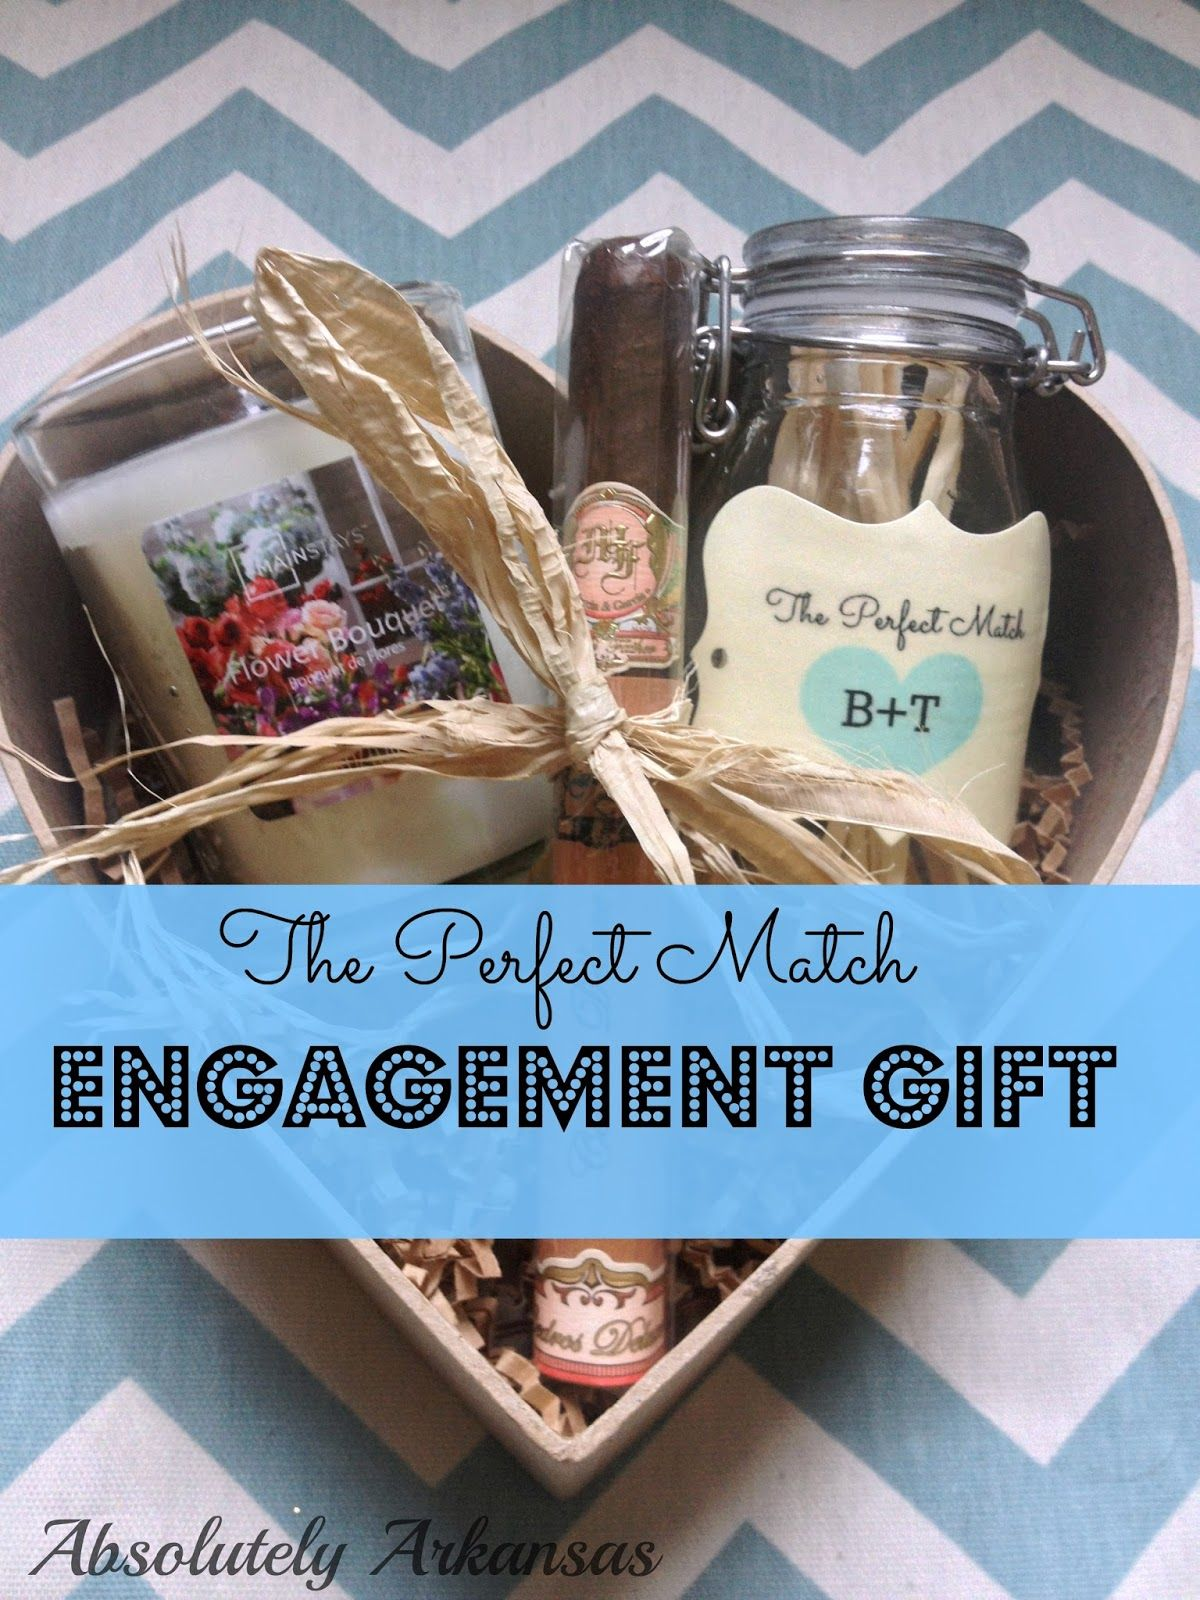 rose & co blog: the perfect match | bird cage | pinterest